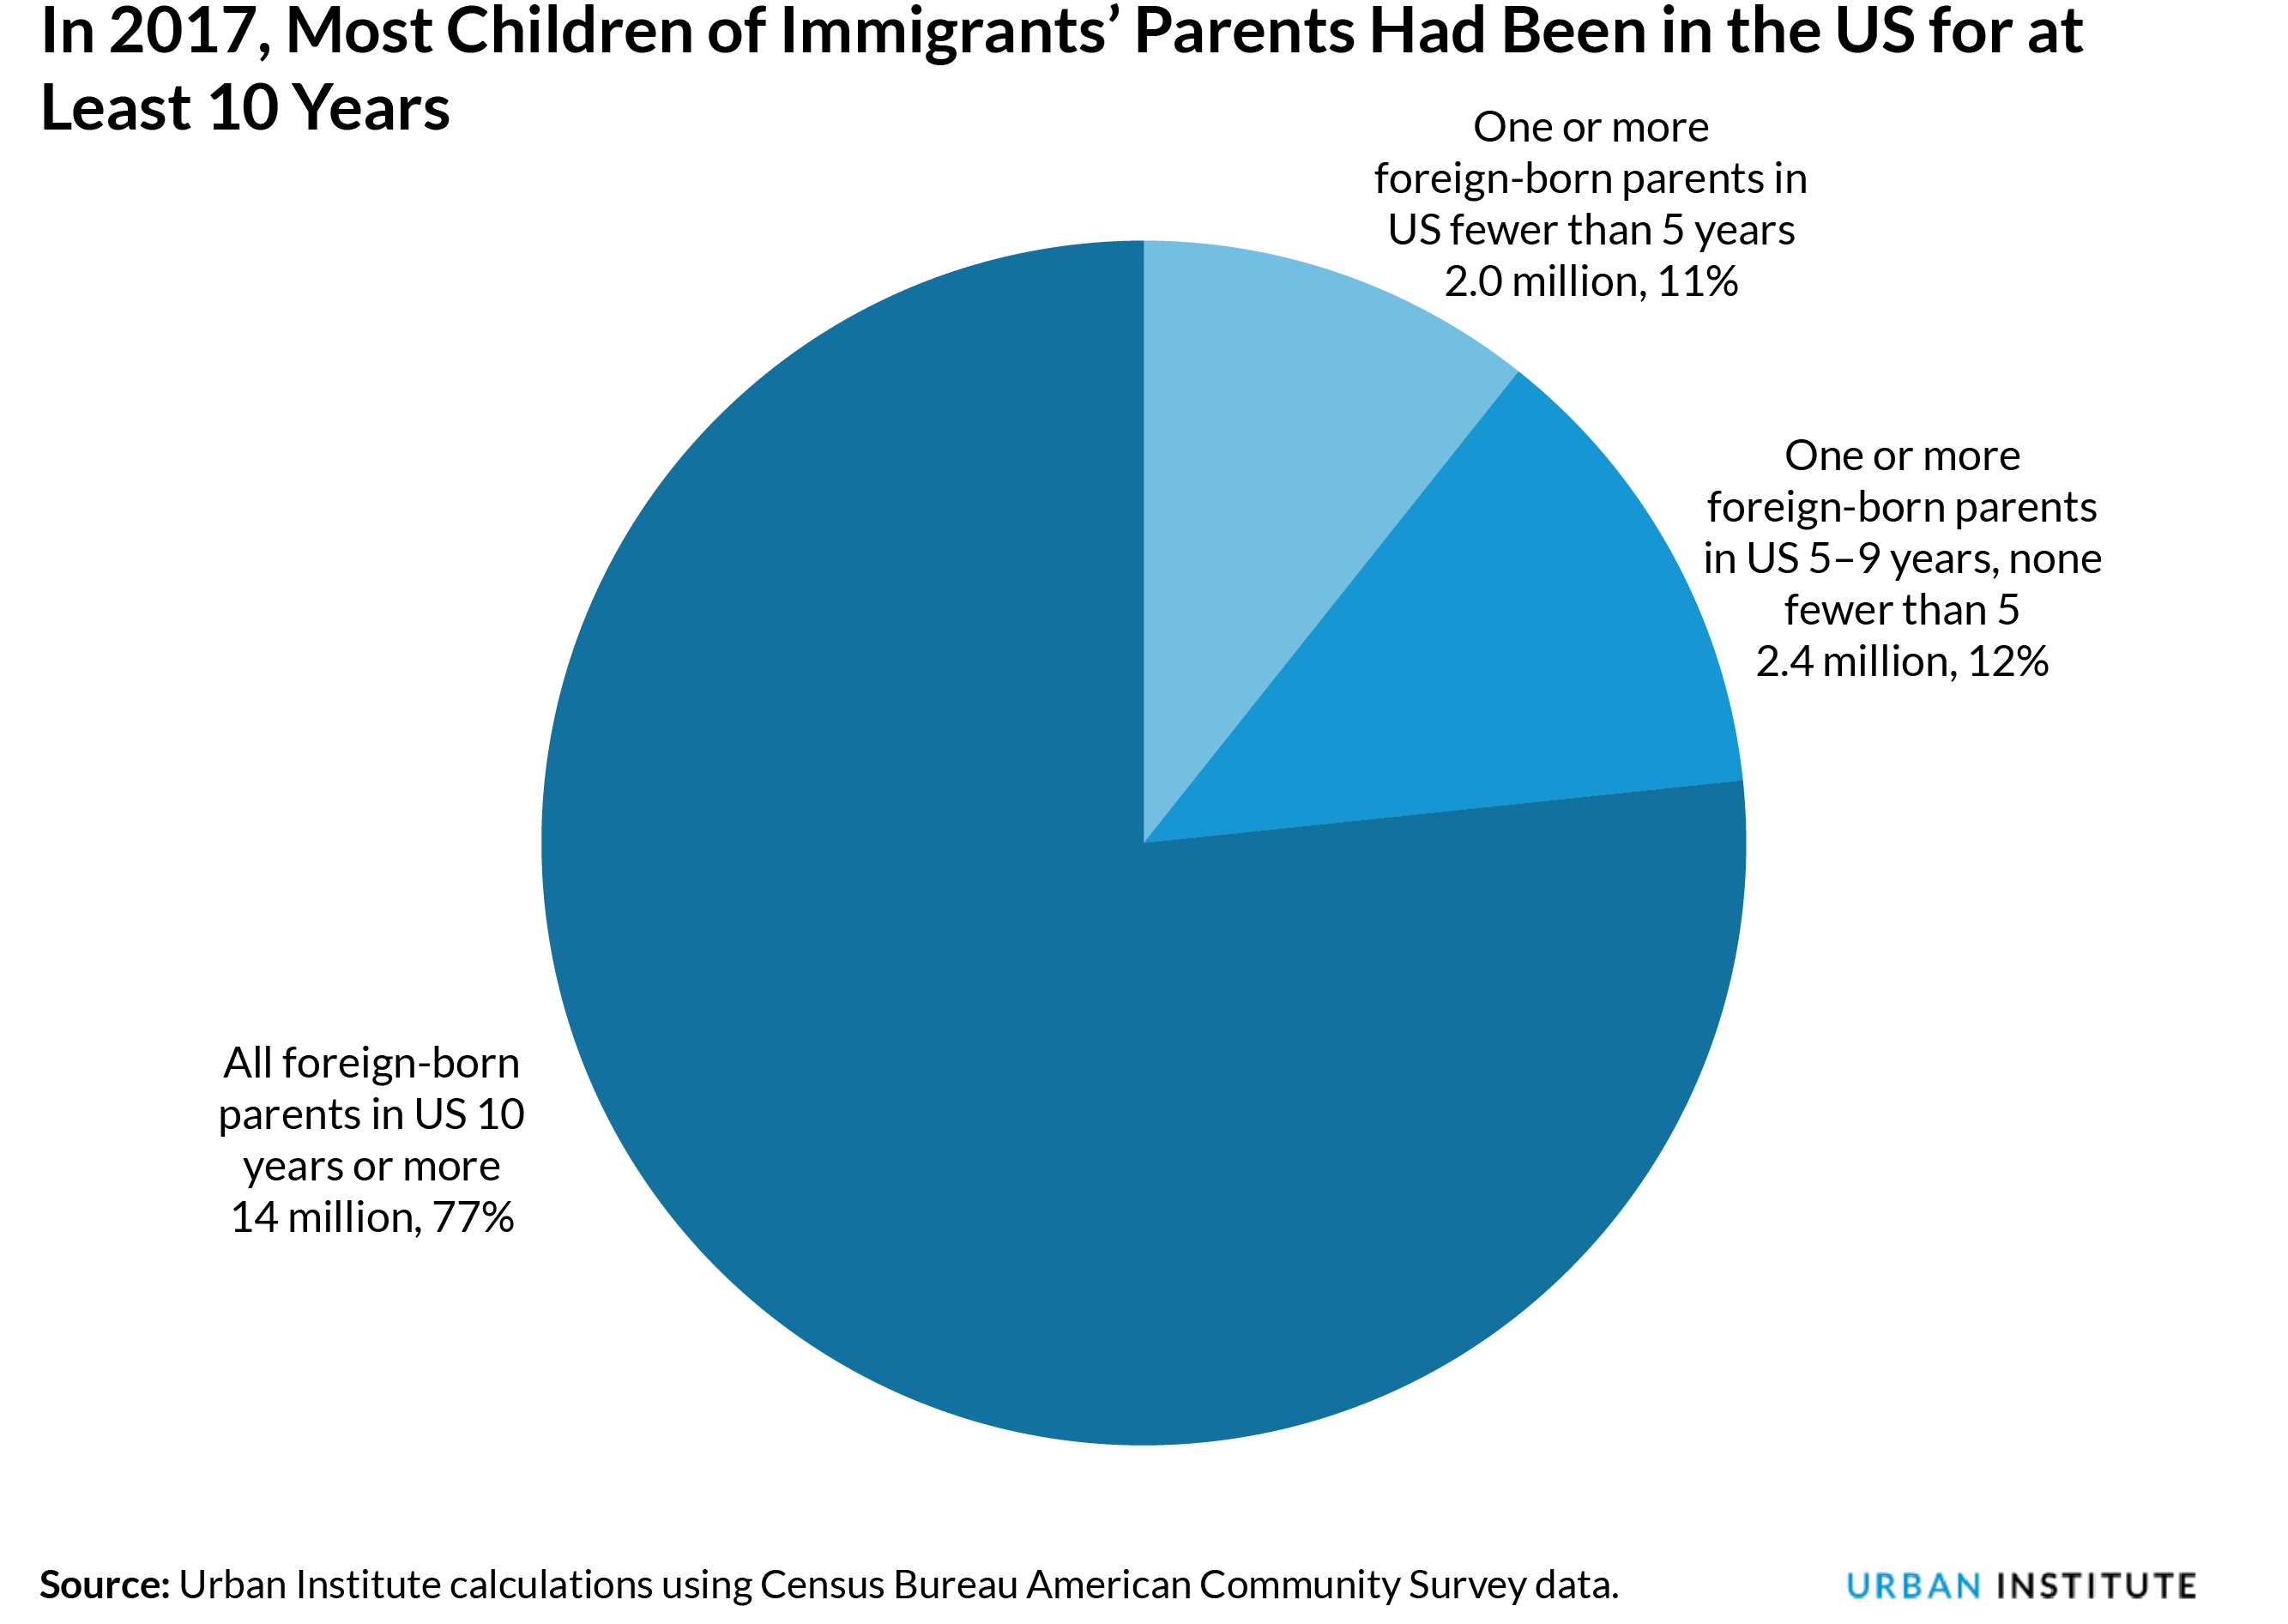 Pie chart of children by parental length of stay in US